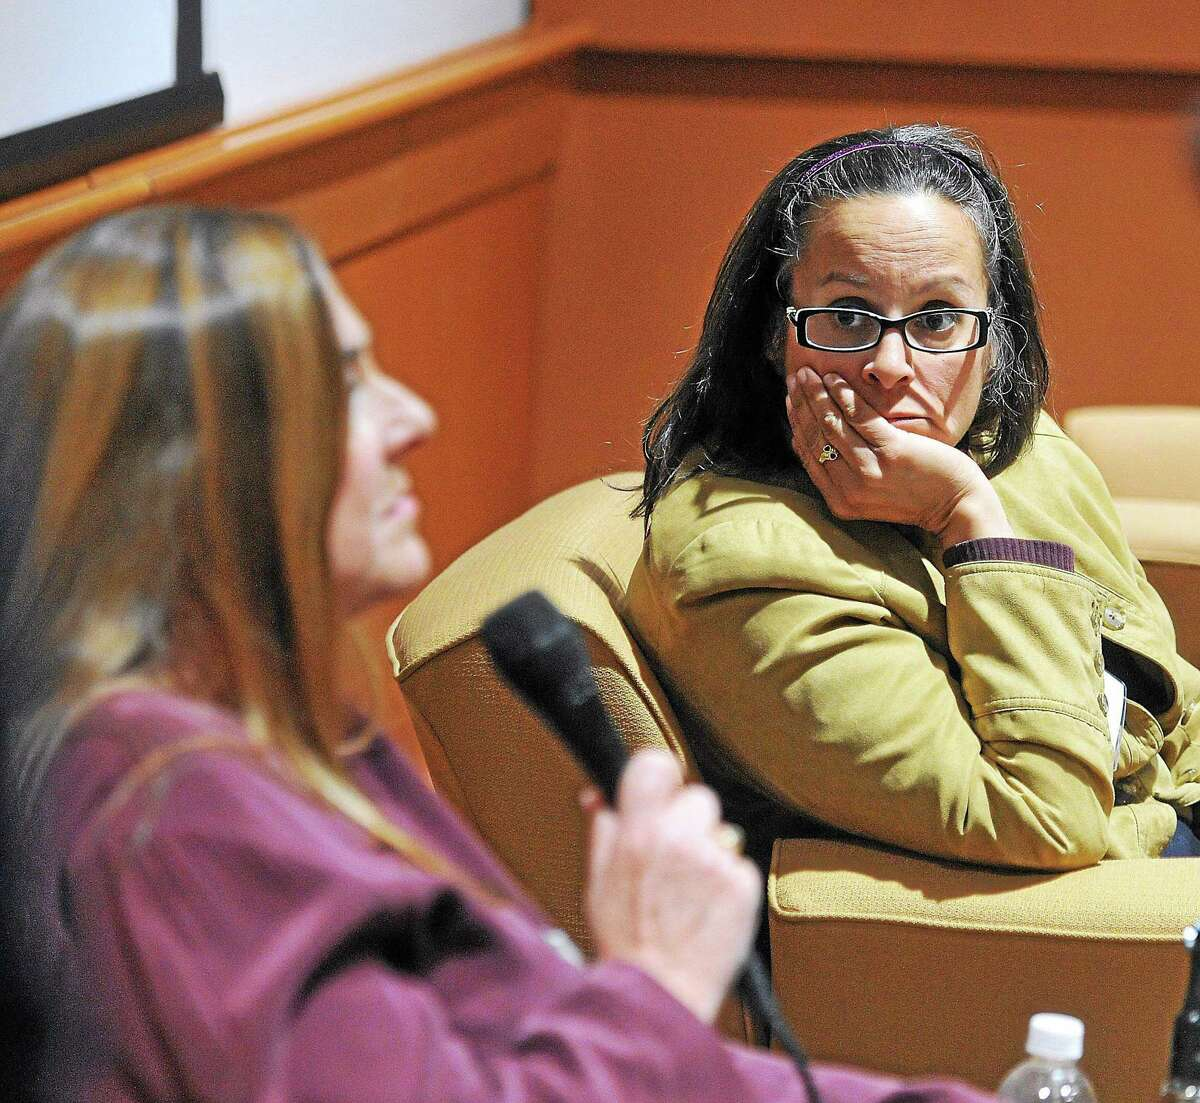 Kathy Flaherty, executive director of the Middletown-based Connecticut Legal Defense Project, takes part in a symposium at Quinnipiac University in this archive photo.